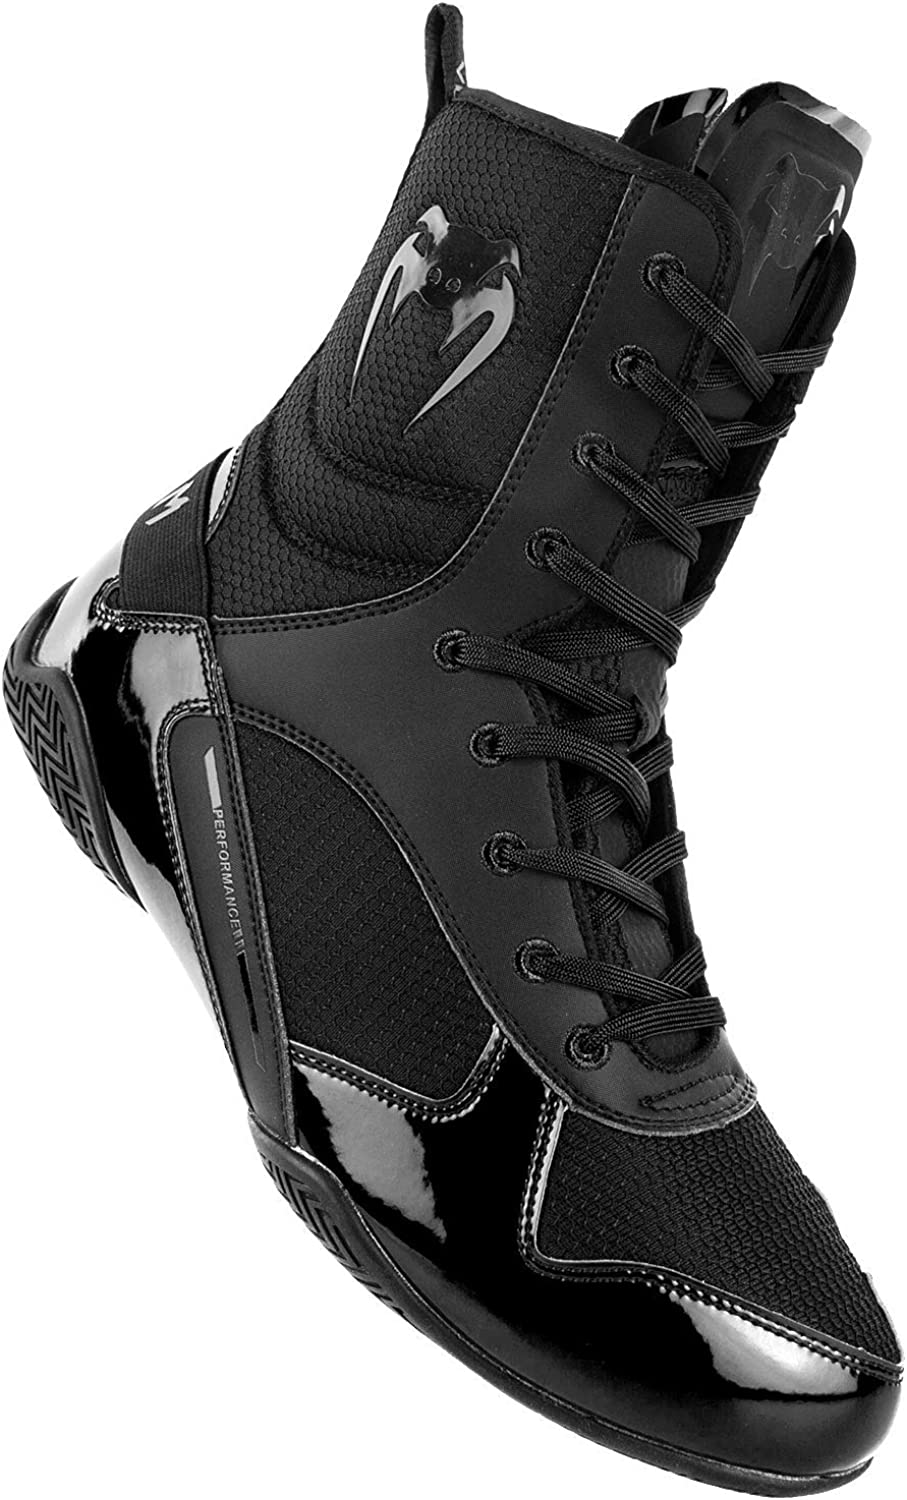 Venum Elite Zapatillas de Boxeo Unisex Adulto